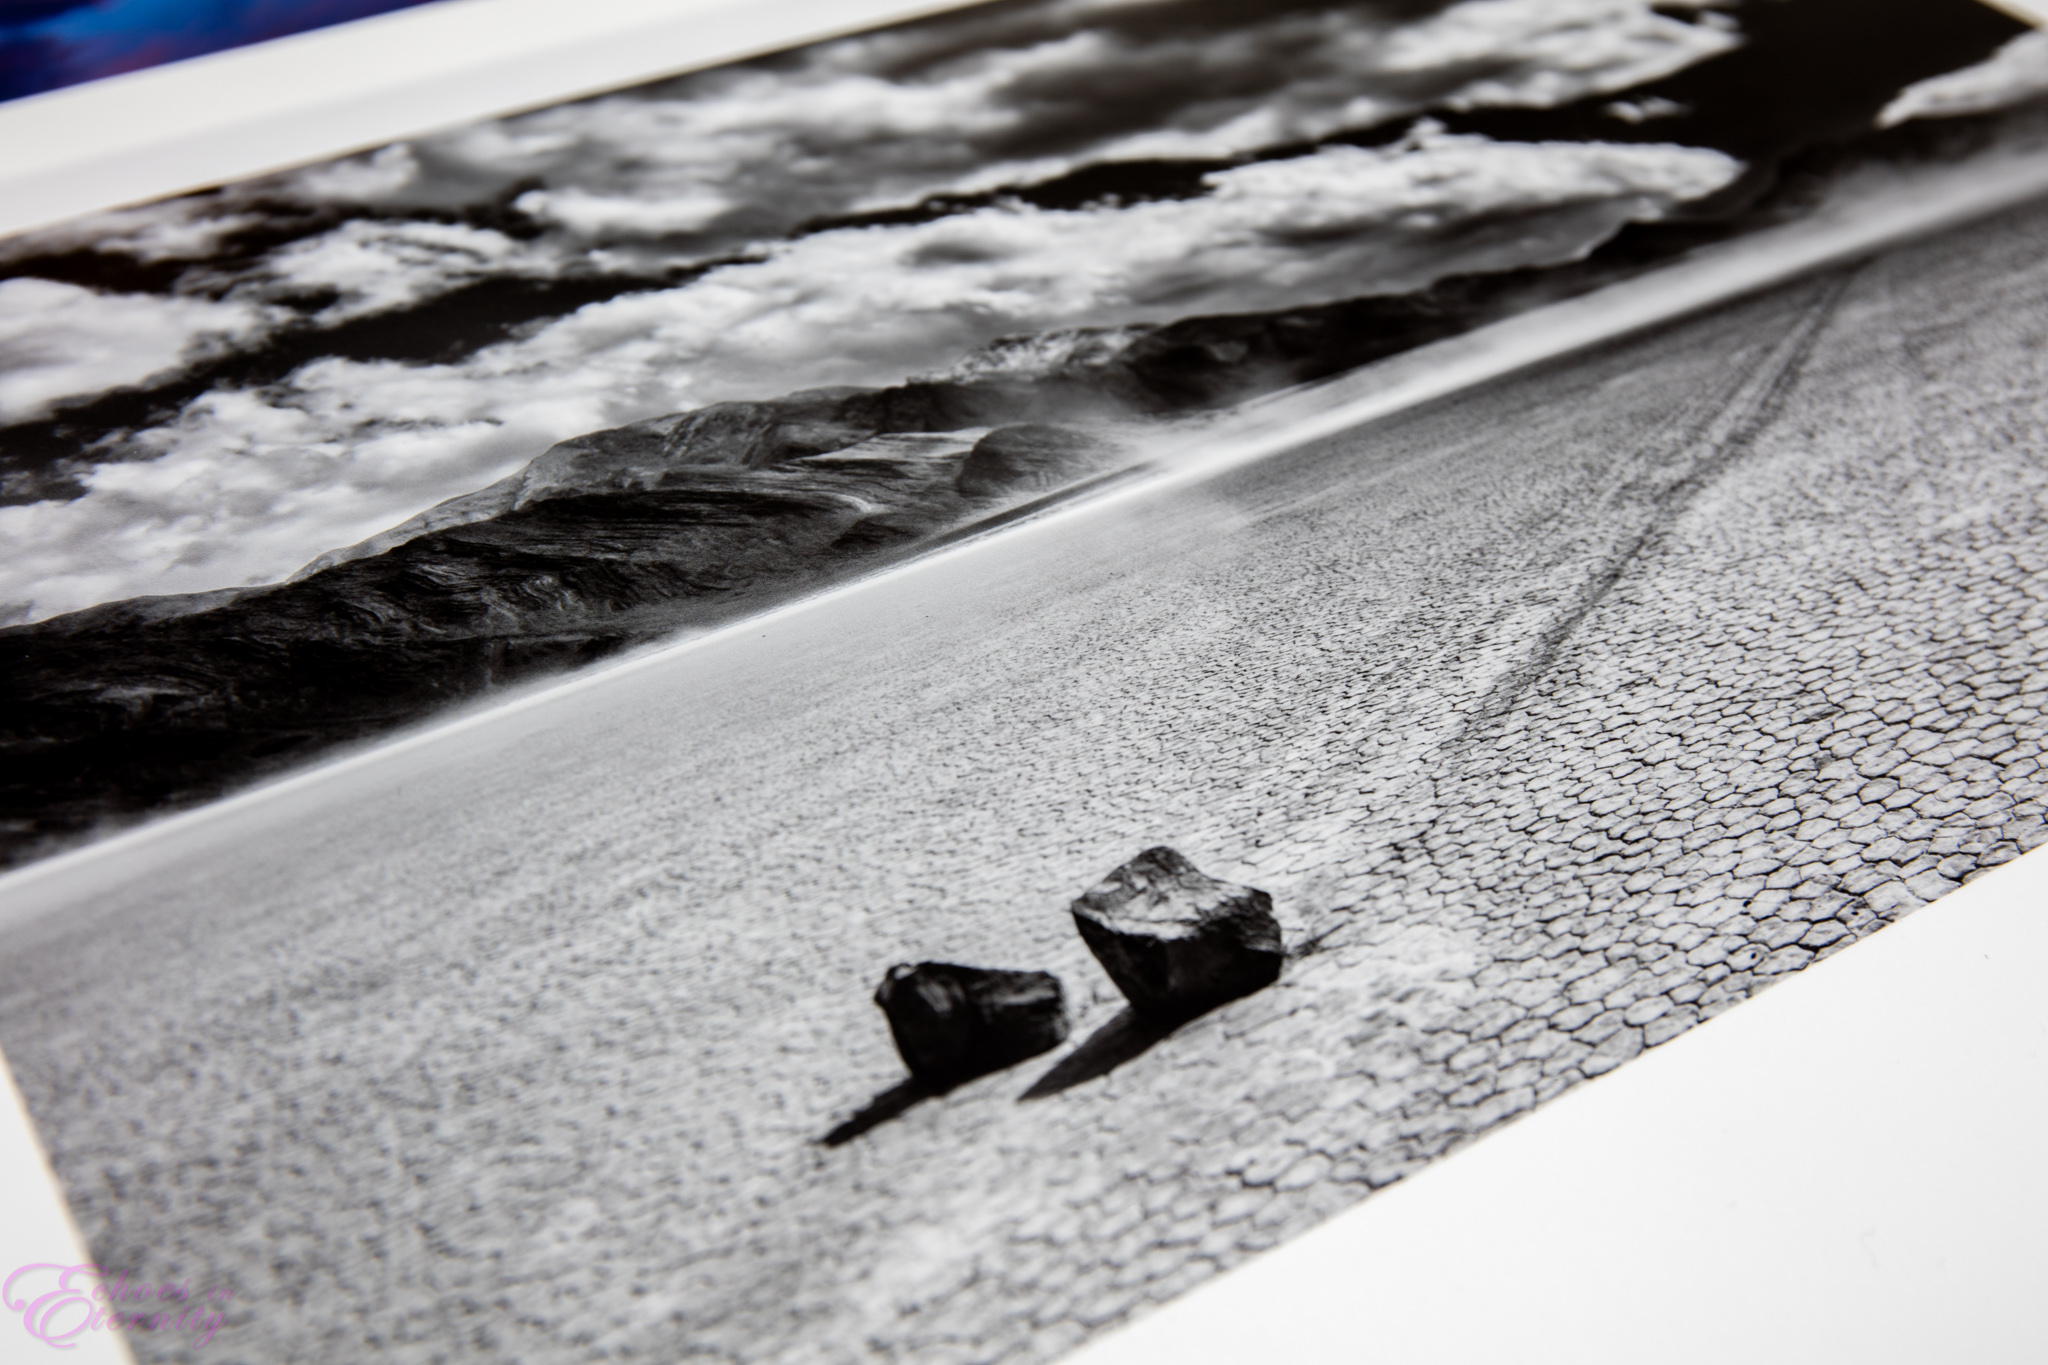 Time Immemorial 1189.  An infrared image of The Racetrack Playa in Death Valley National Park, printed on Fine Art Baryta paper. Baryta's name comes from barium sulphate, which coats the paper to emulate the feel and finish of traditional darkroom prints. It is quickly becoming my favorite printing paper.